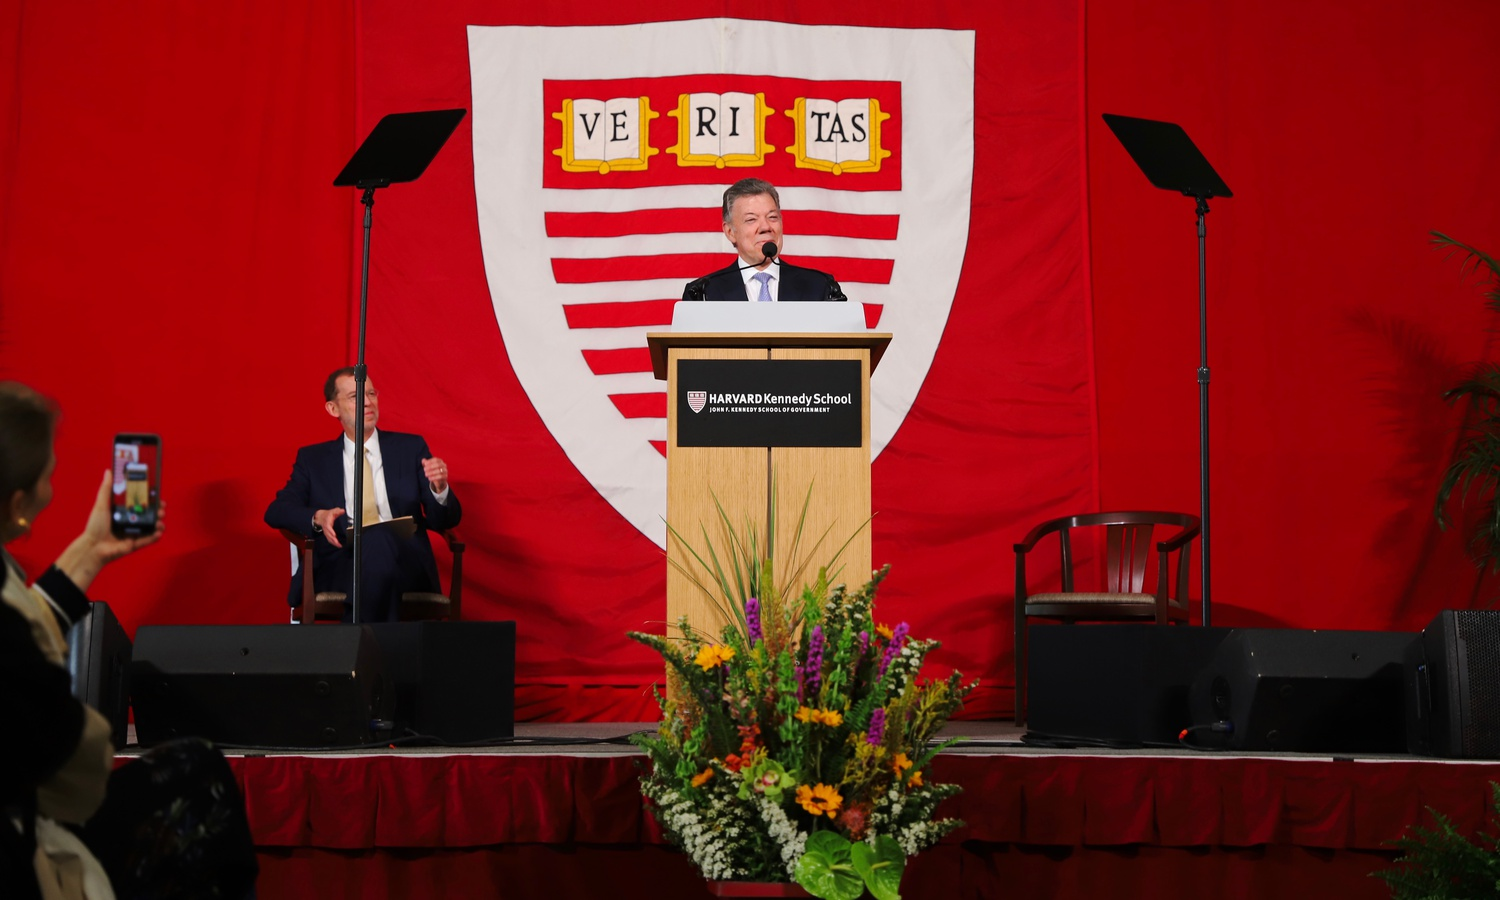 Juan Manuel Santos, former president of Colombia and Nobel Peace Prize laureate, gave advice to students during his graduation speech at the Harvard Kennedy School Wednesday afternoon.